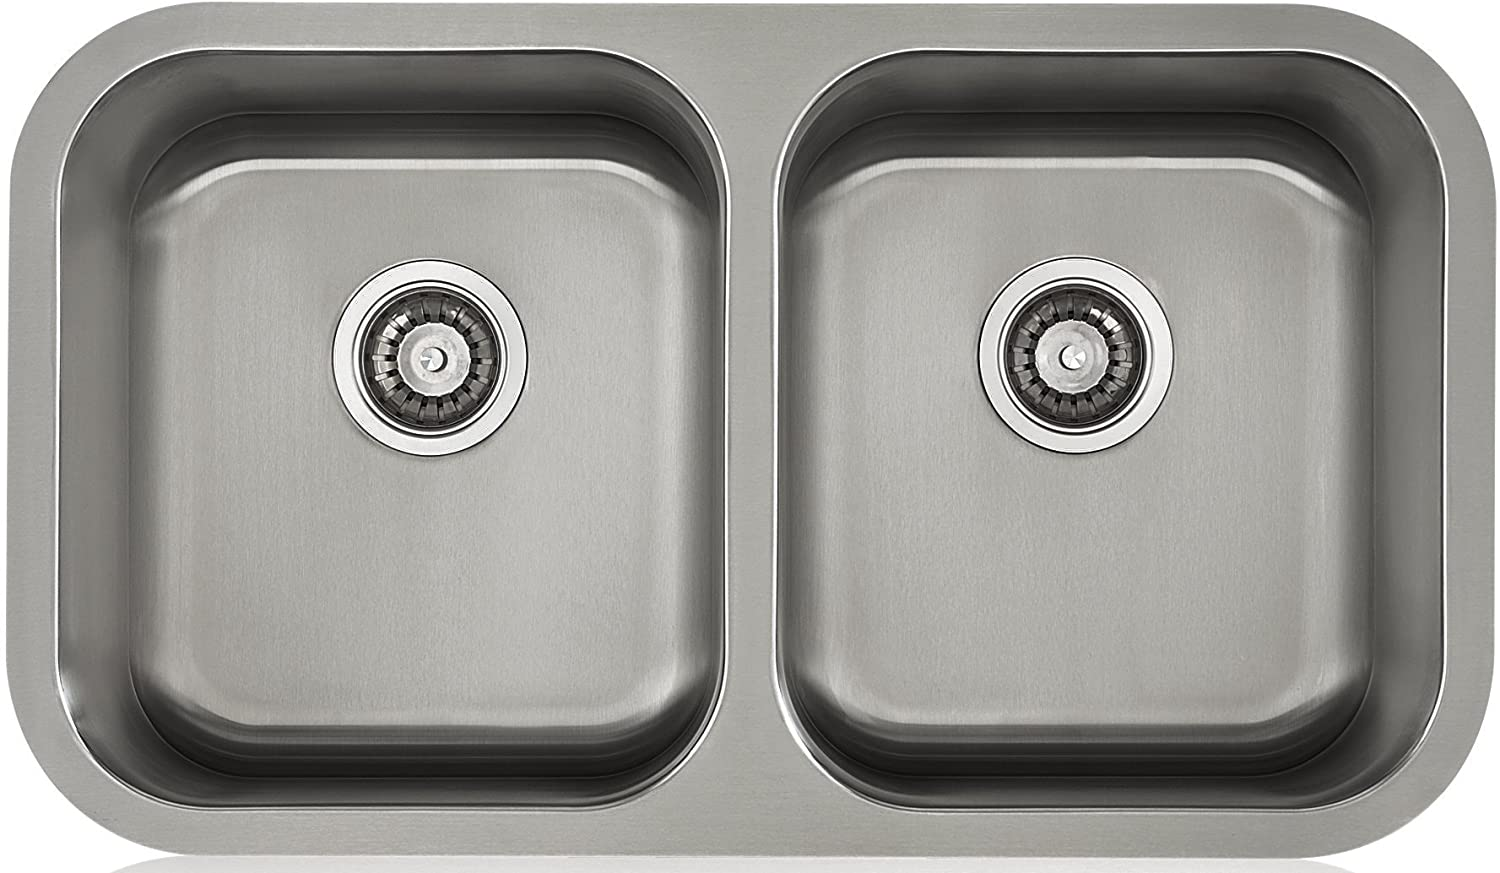 Lenova LD16620 Apogee Stainless Steel Equal Double Bowl Under-Mount Kitchen Sink, 16-Gauge